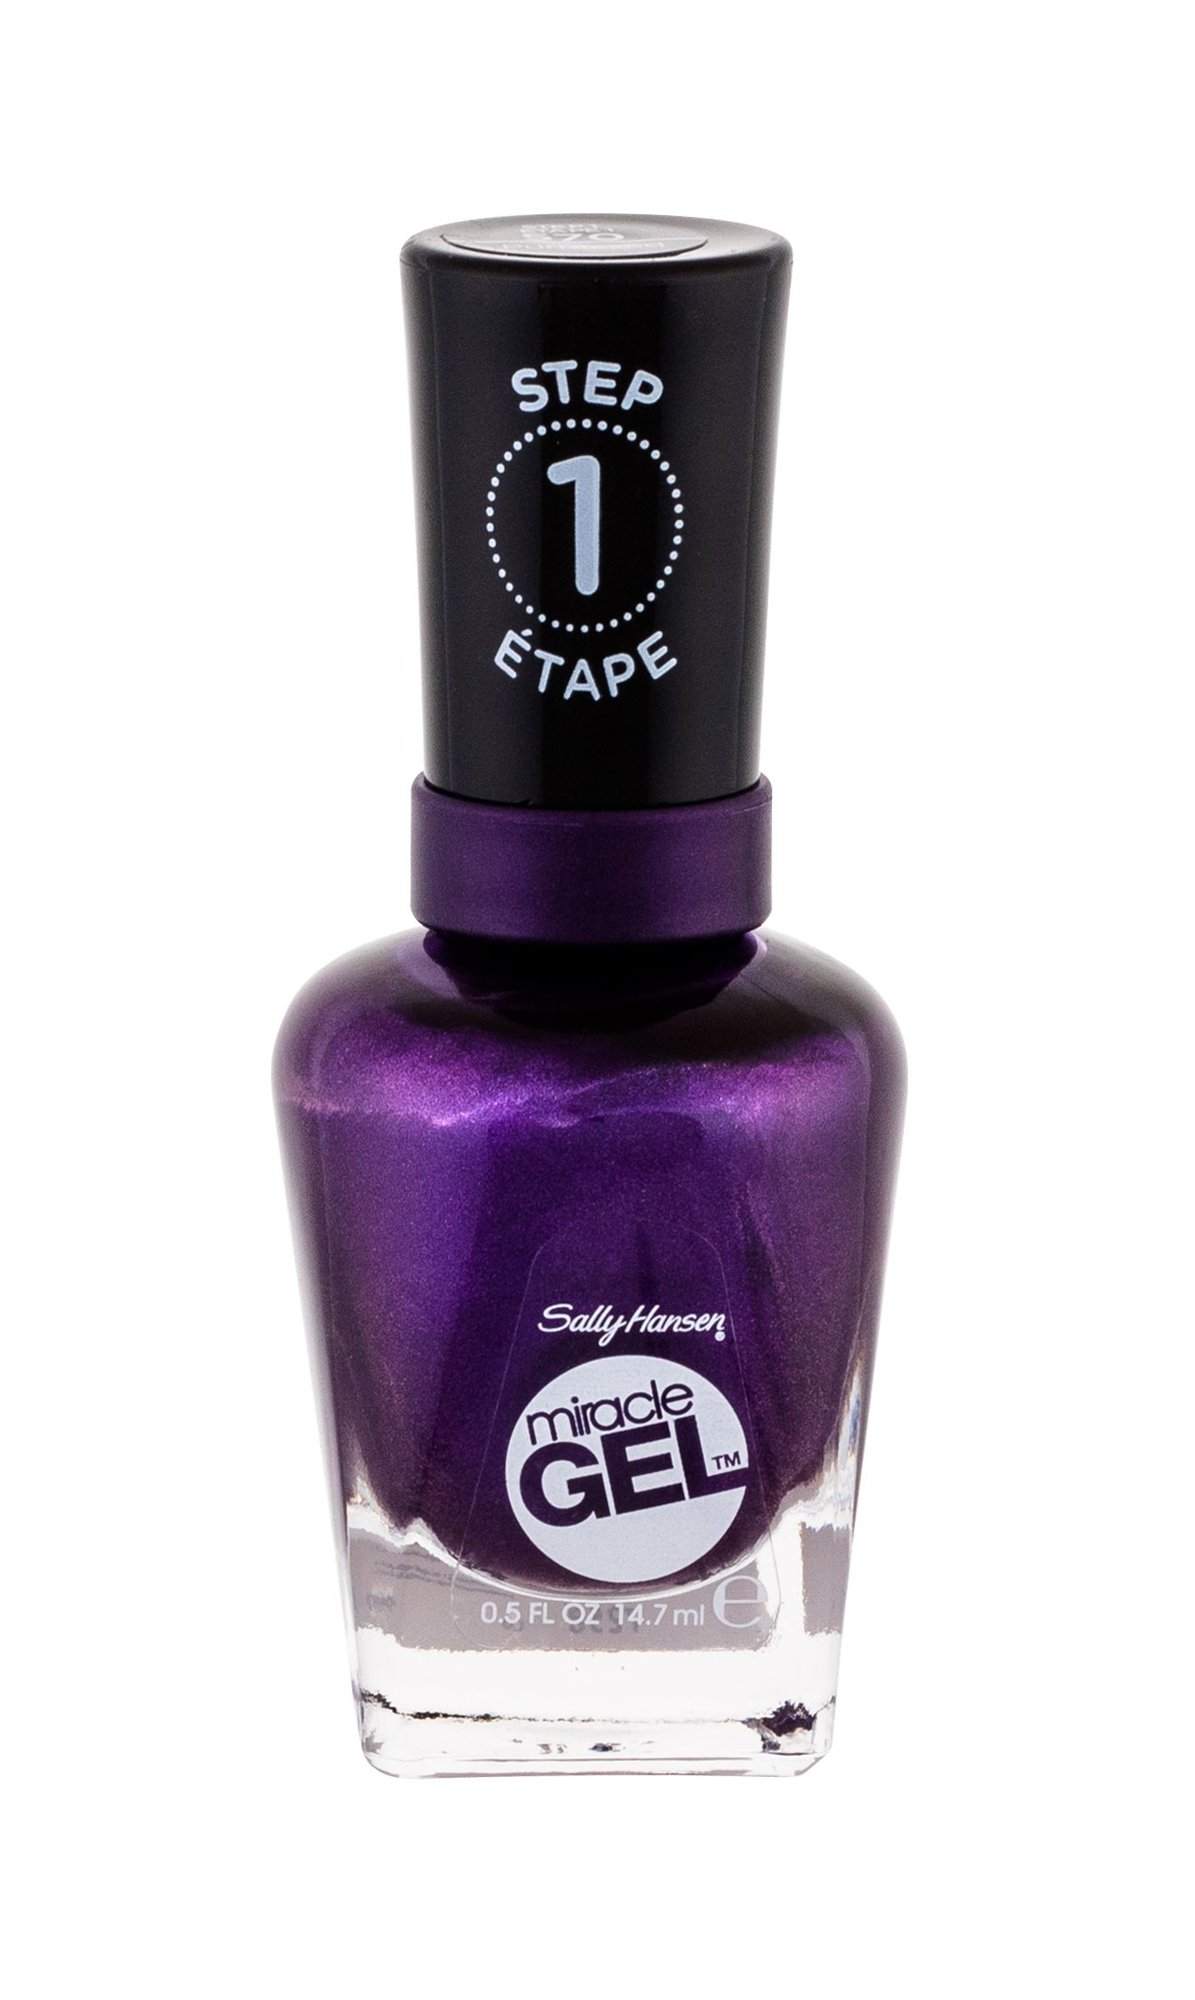 Sally Hansen Miracle Gel Nail Polish 14,7ml 570 Purplexed